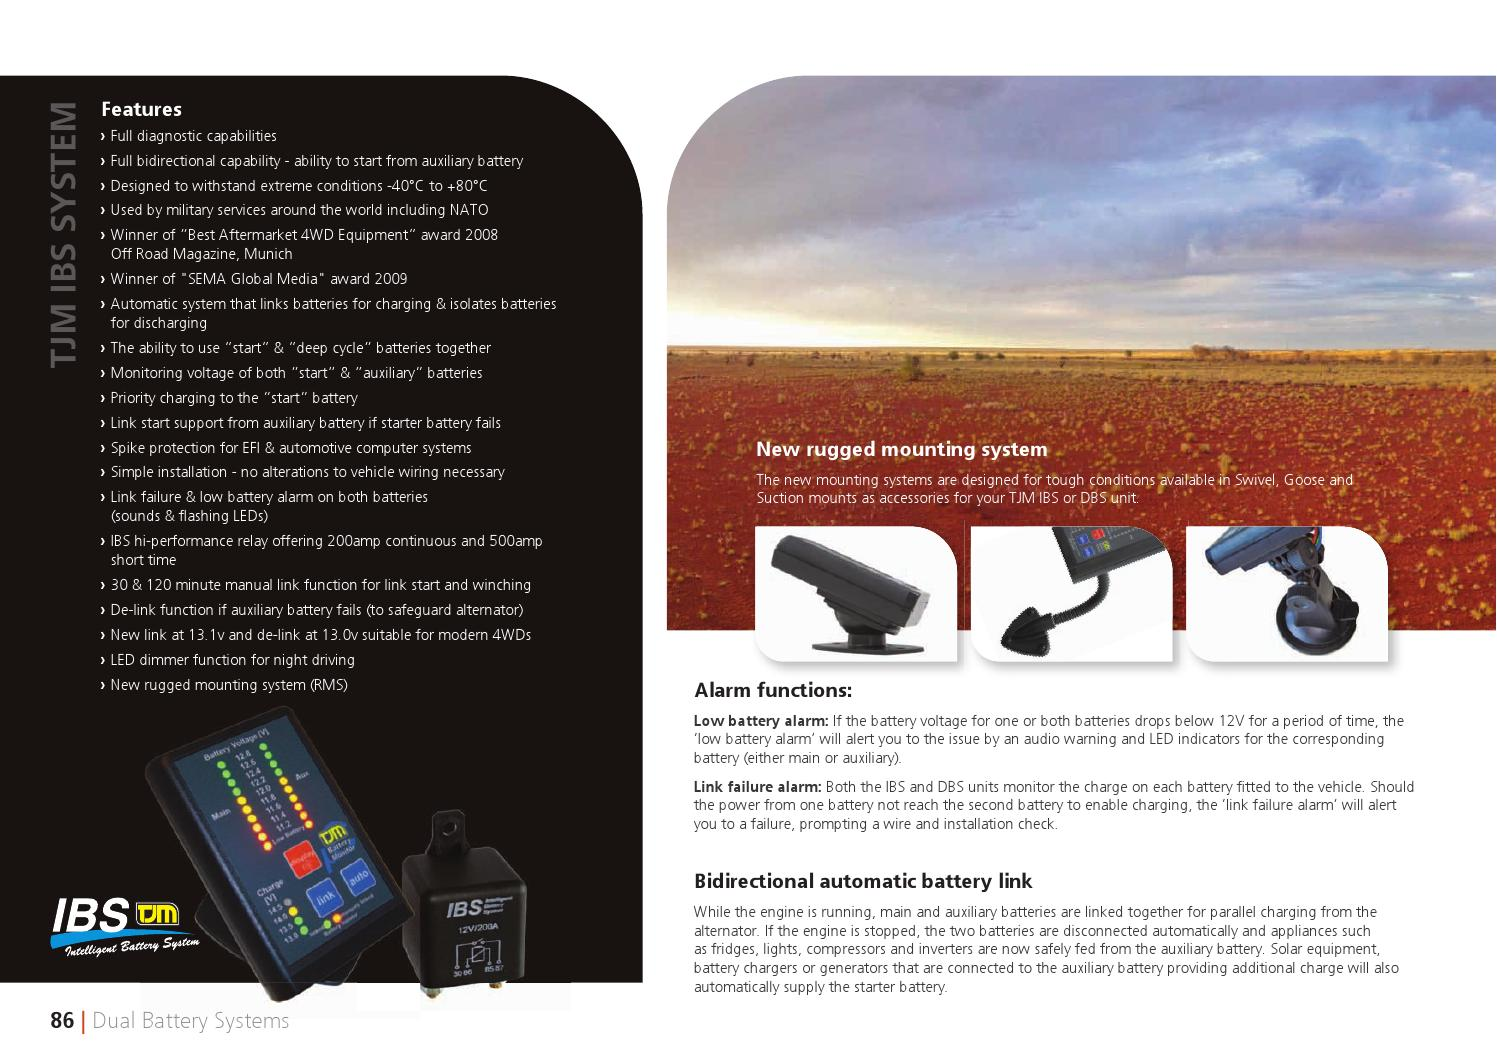 tjm ibs dual battery system wiring diagram ps 2 keyboard equipped catalogue by portugal issuu